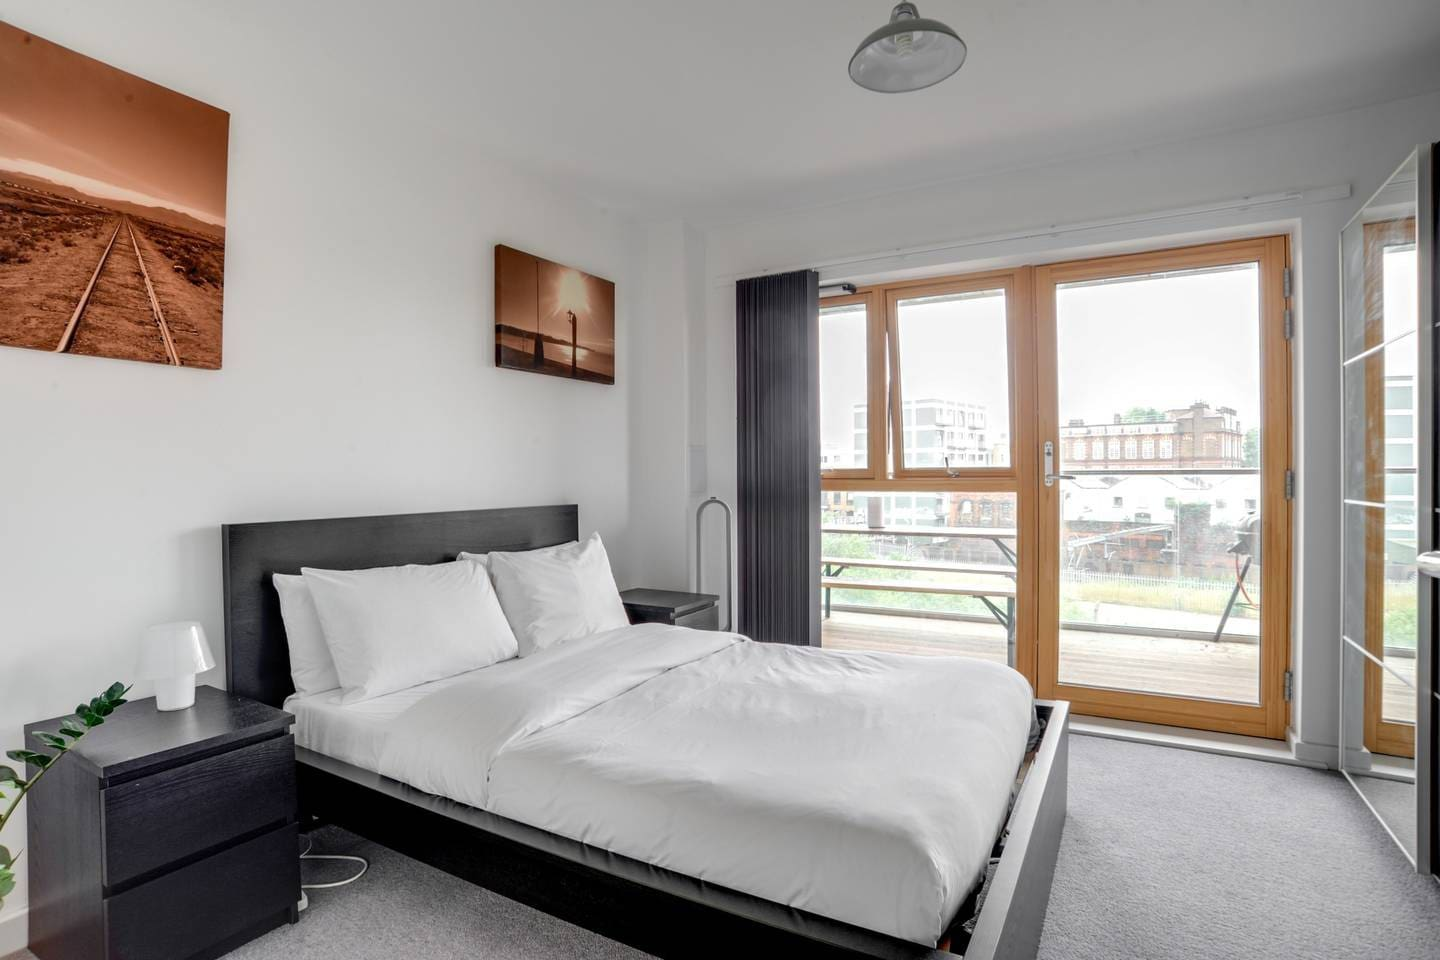 Private bedroom with balcony access